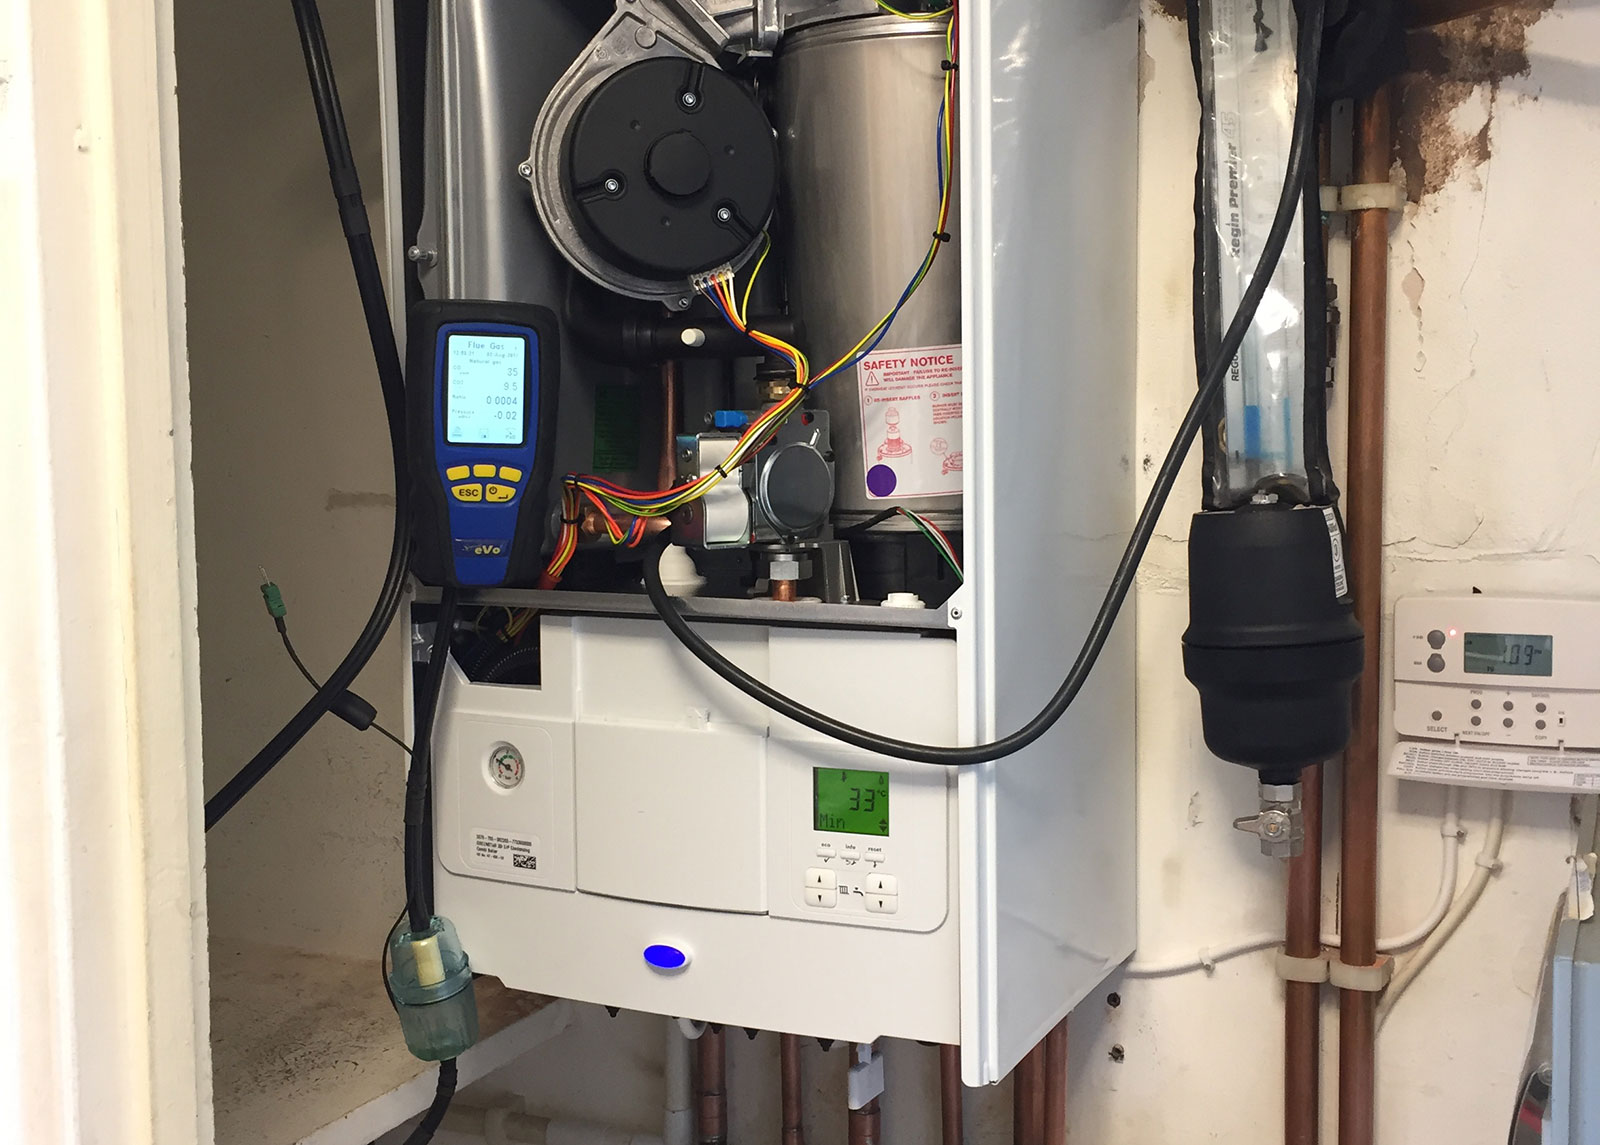 https://tlbheating.co.uk/wp-content/uploads/2019/07/servicing.jpg